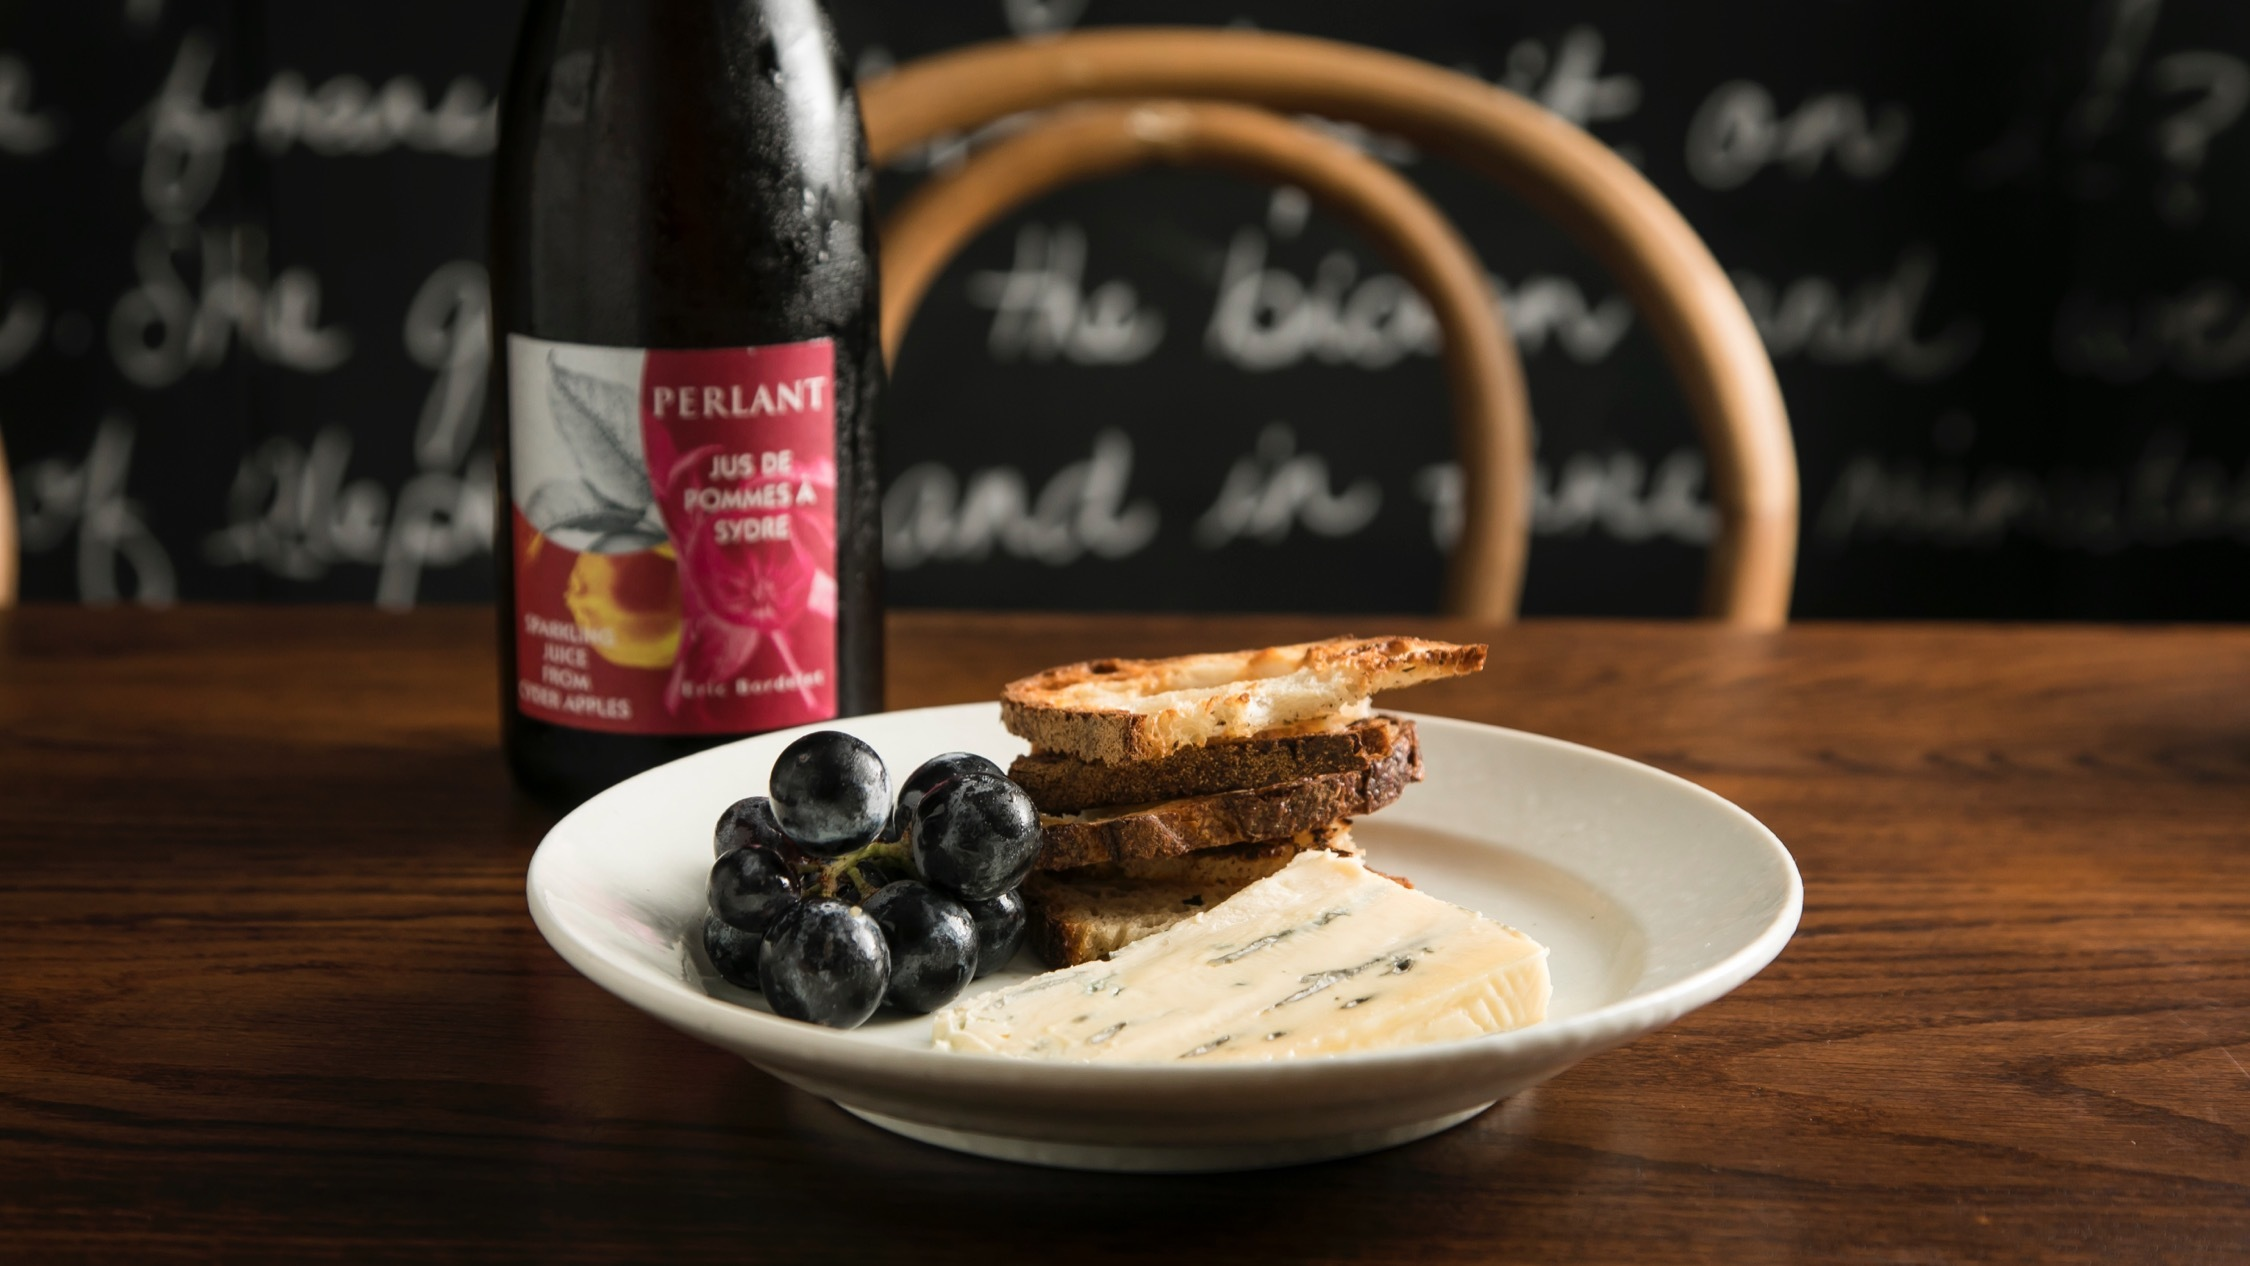 Cheese, grapes and toast at Dear Sainte Eloise